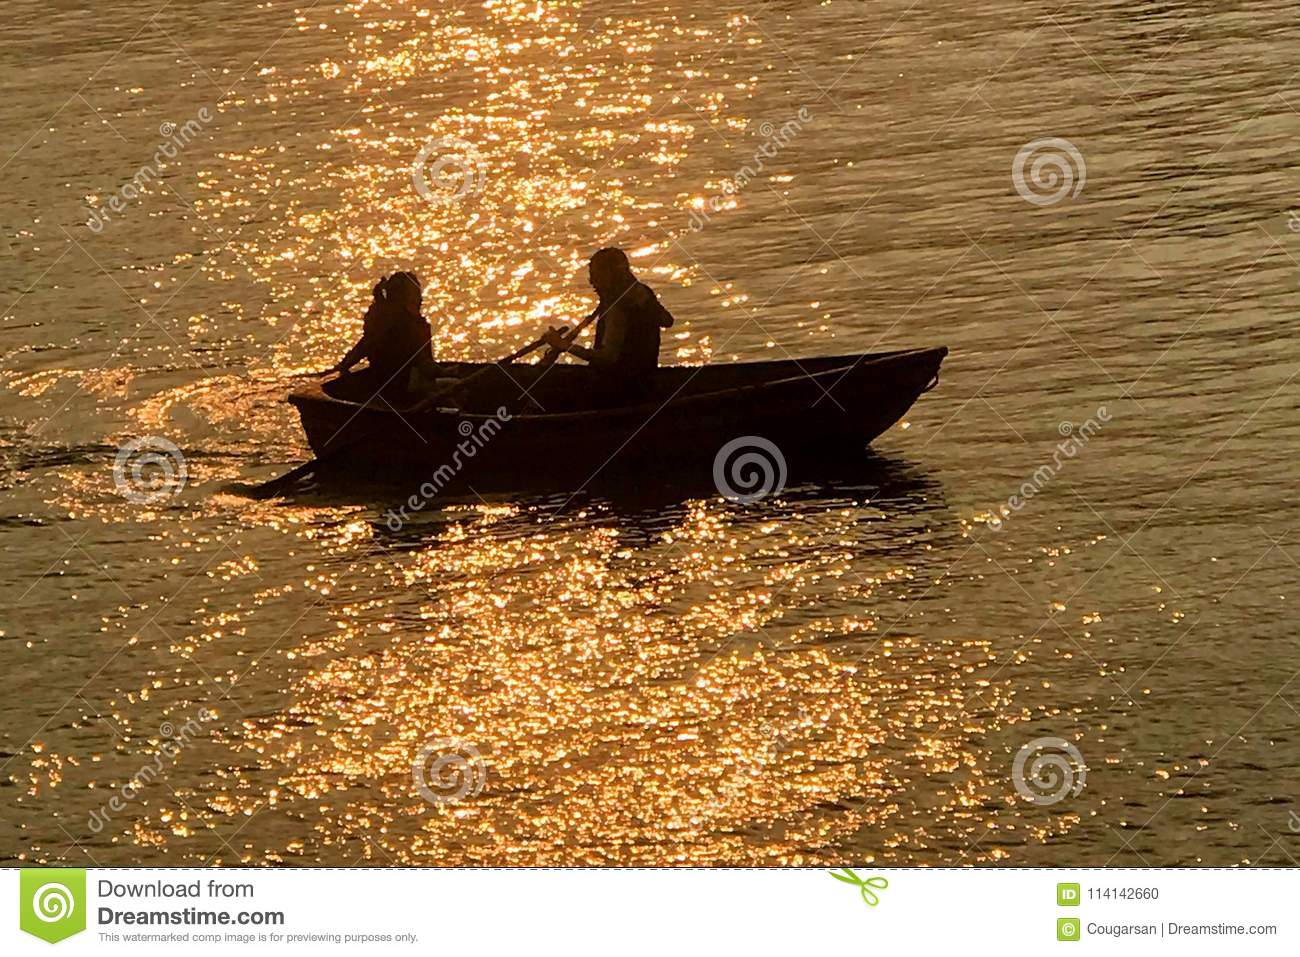 Silhouette of dating couple, recreational boat on lake at sunset